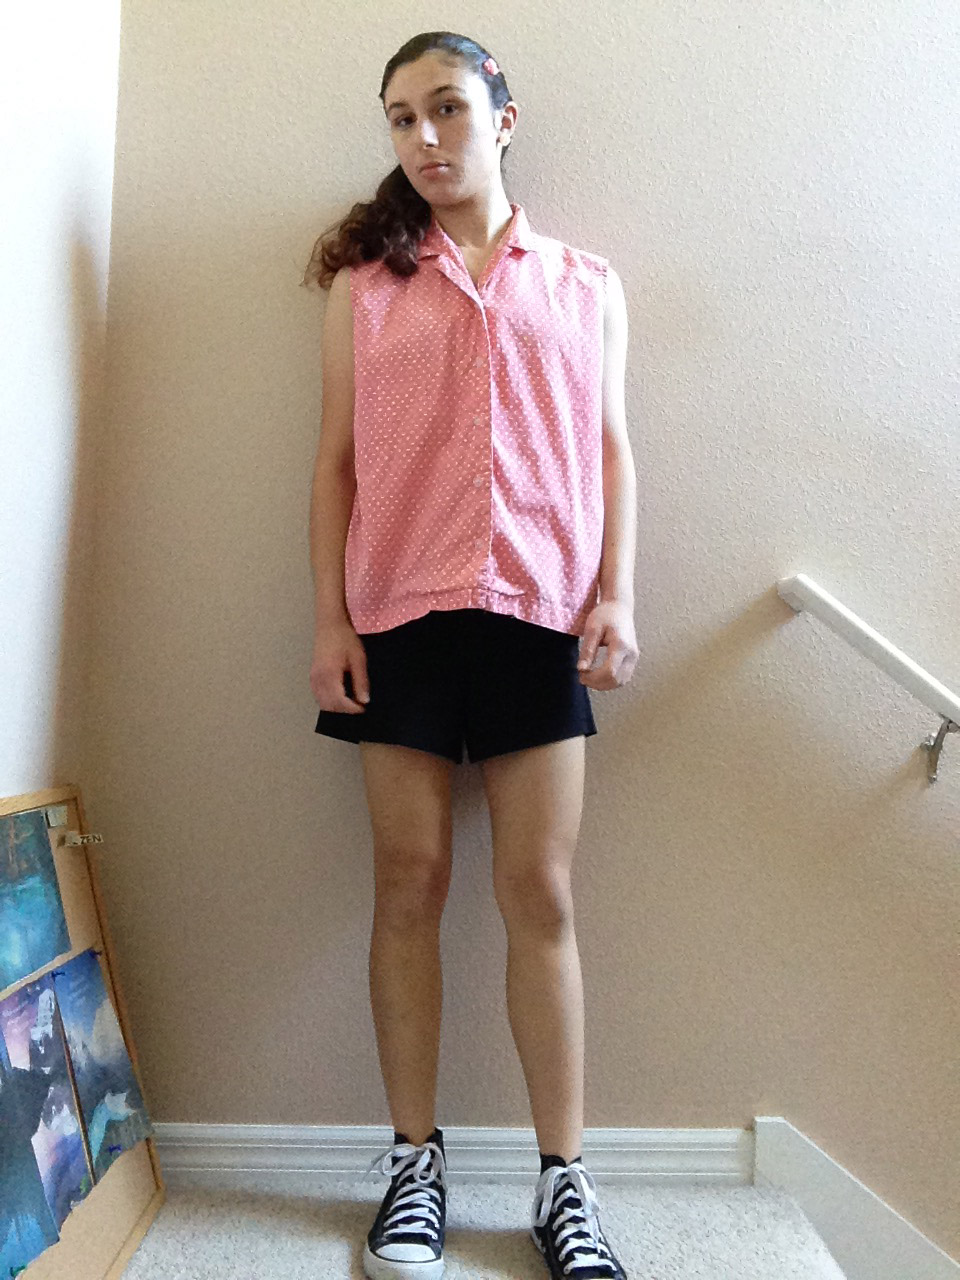 bebe6de2a3 Converse tennis shoes   black shorts from T. J. Maxx   pink   white polka  dot shirt from thrift store   ponytail   pink sparkly heart-shaped hair  clip ...